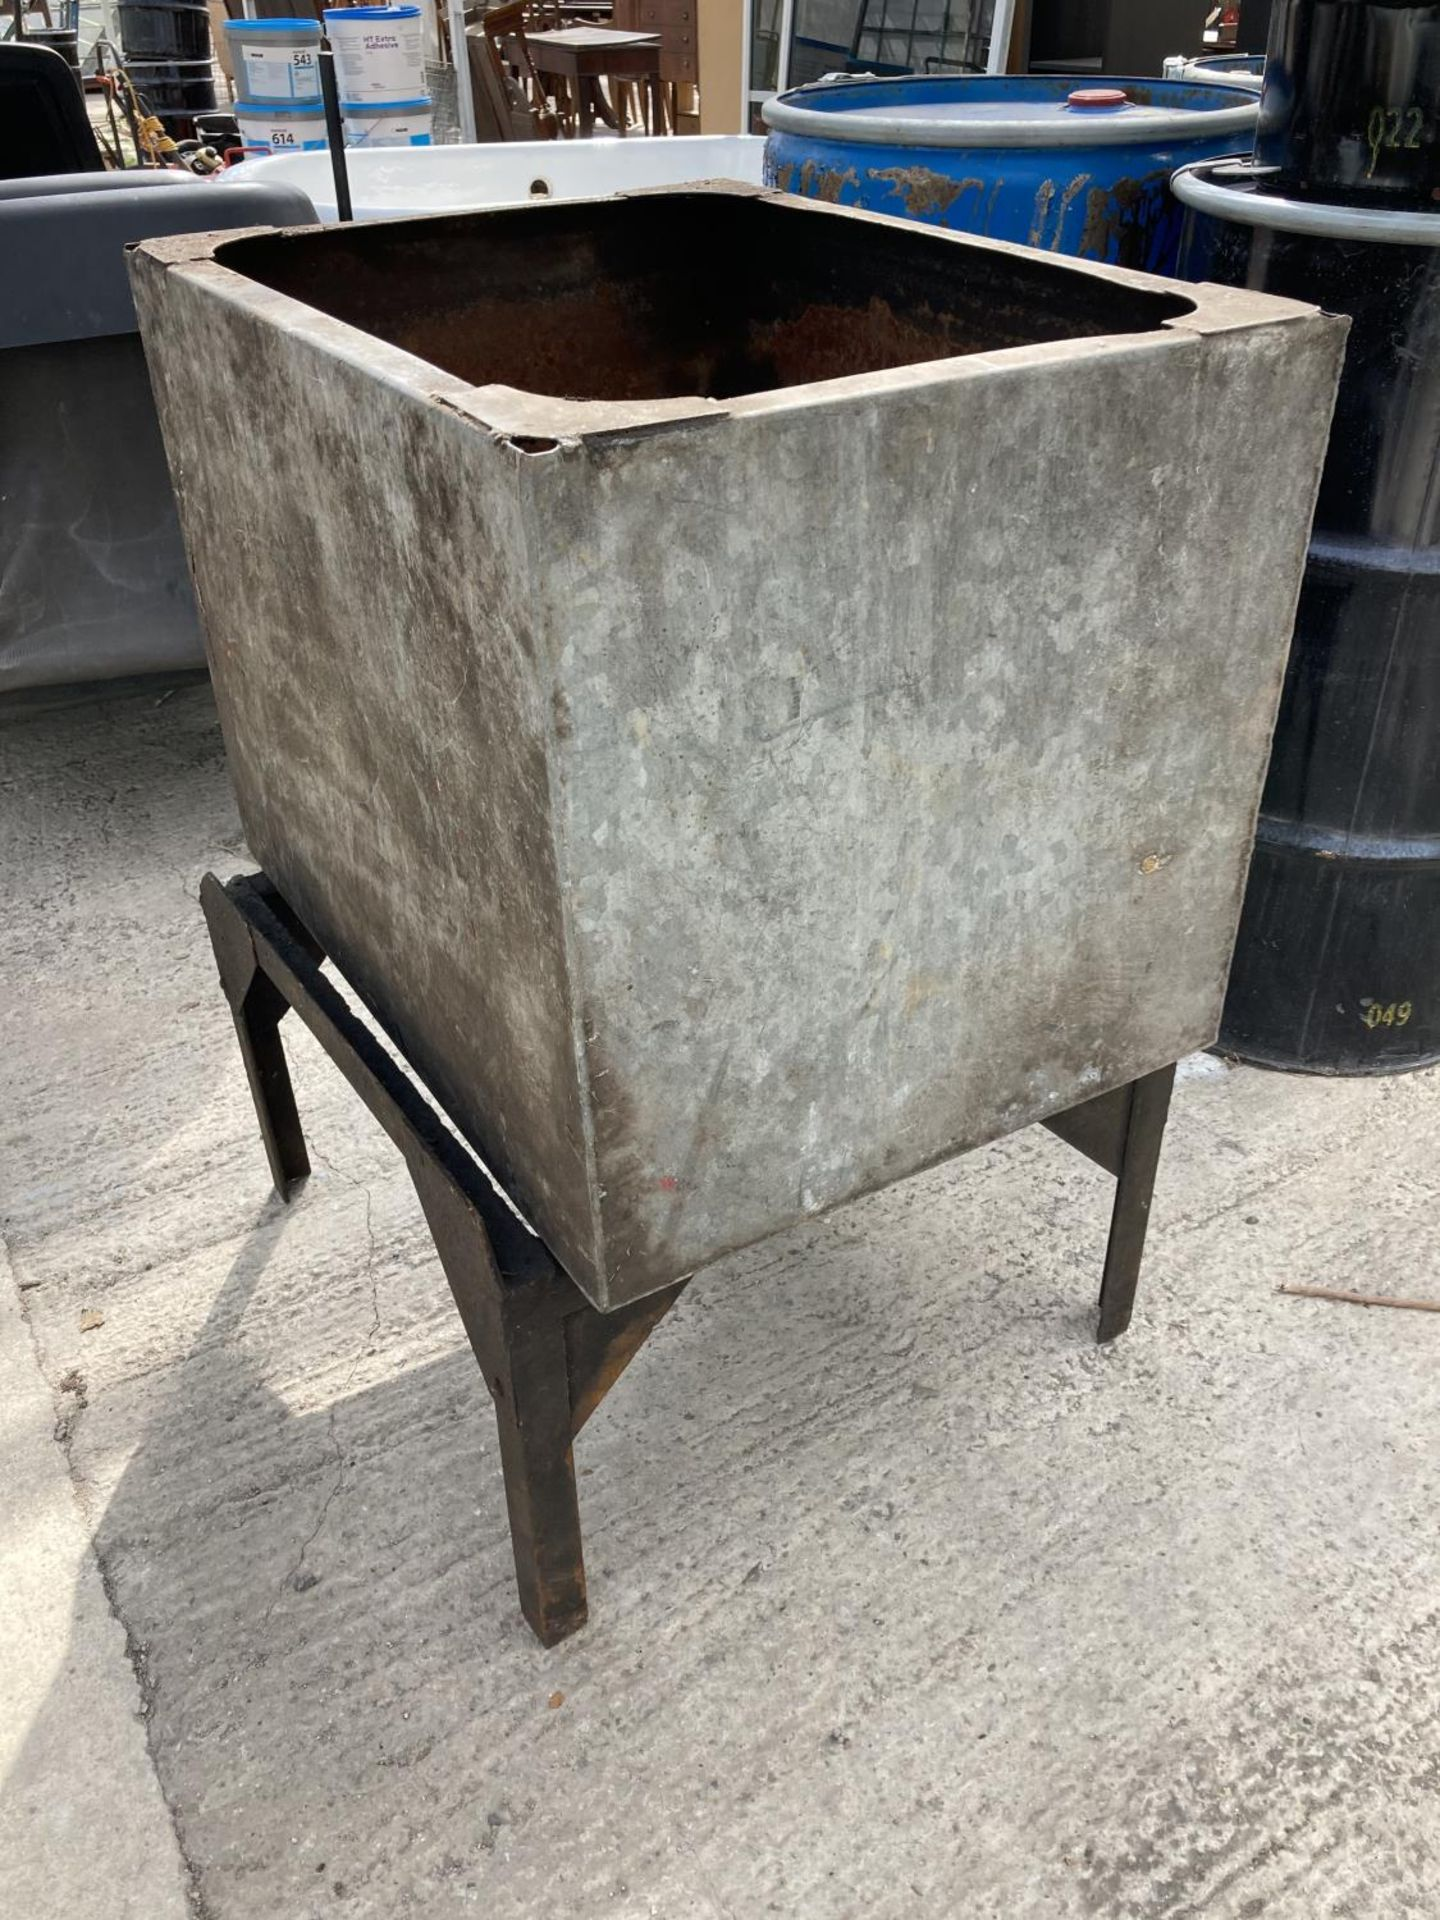 A GALVANISED WATER TANK ON A STAND NO VAT - Image 2 of 2